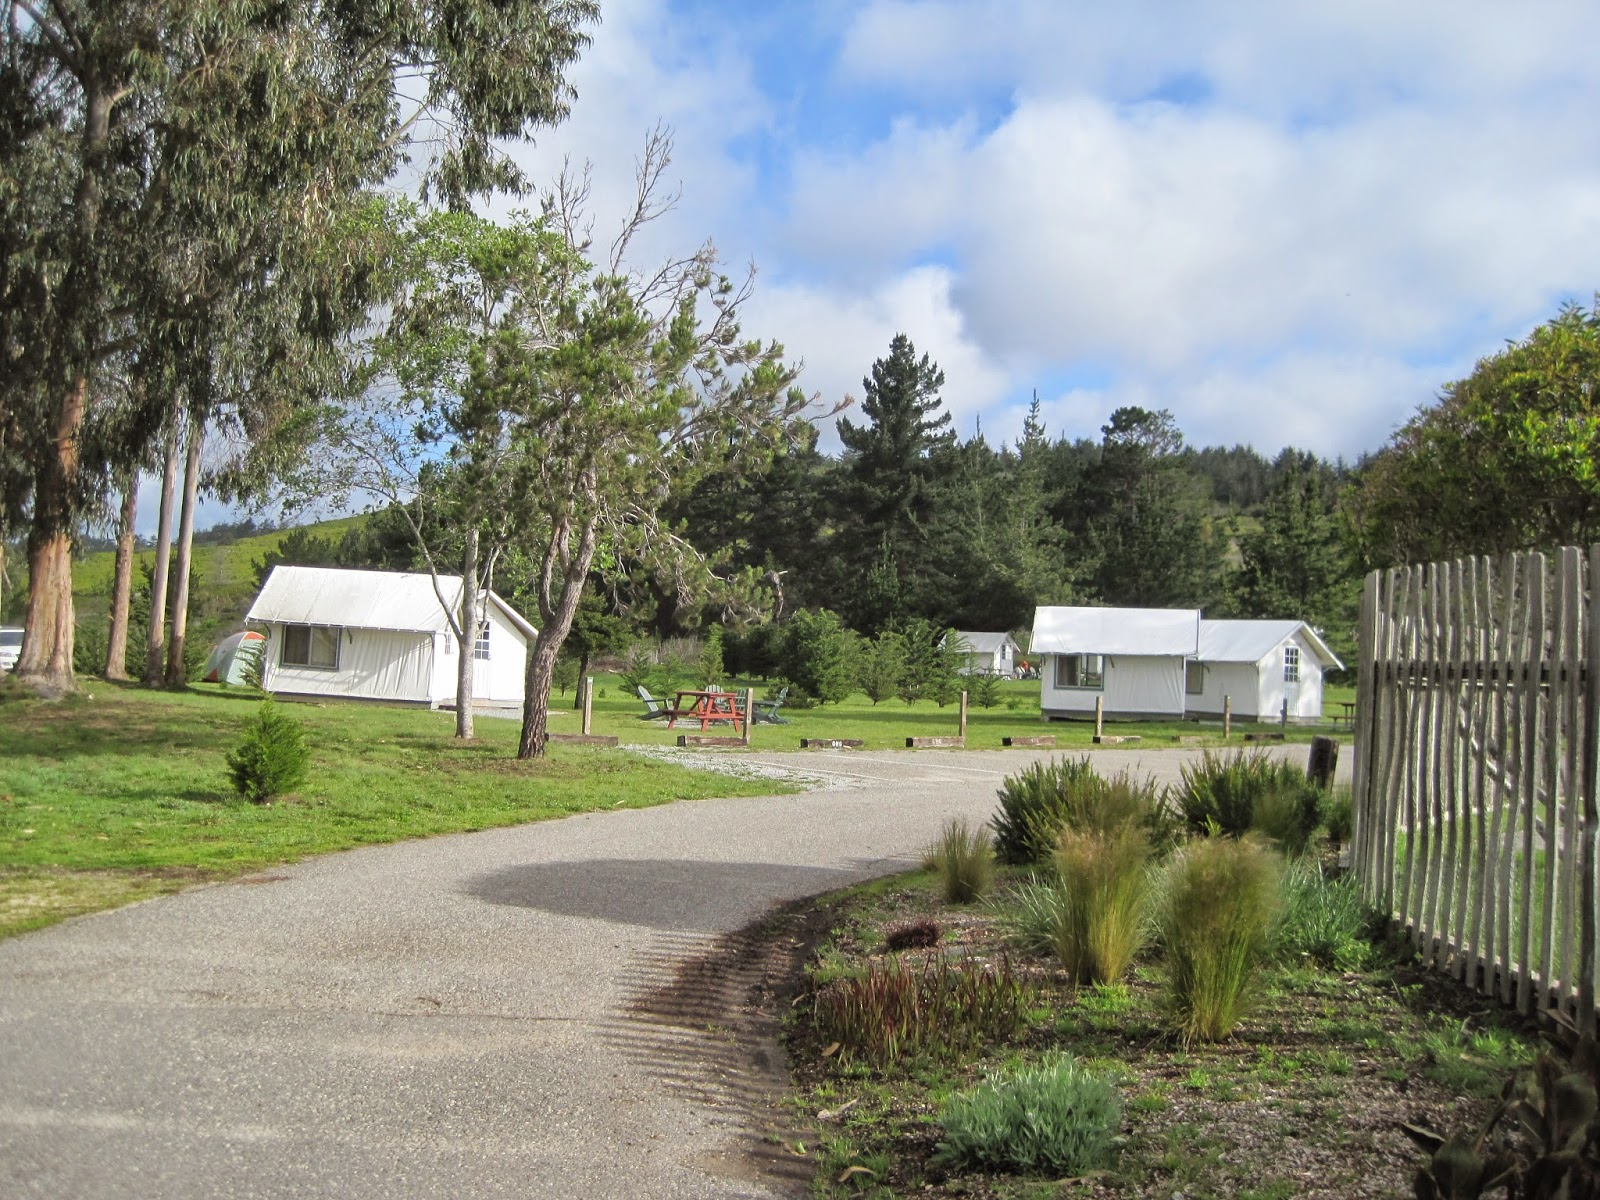 This is the road into the tent bungalows. & My Travels: Costanoa KOA Campground